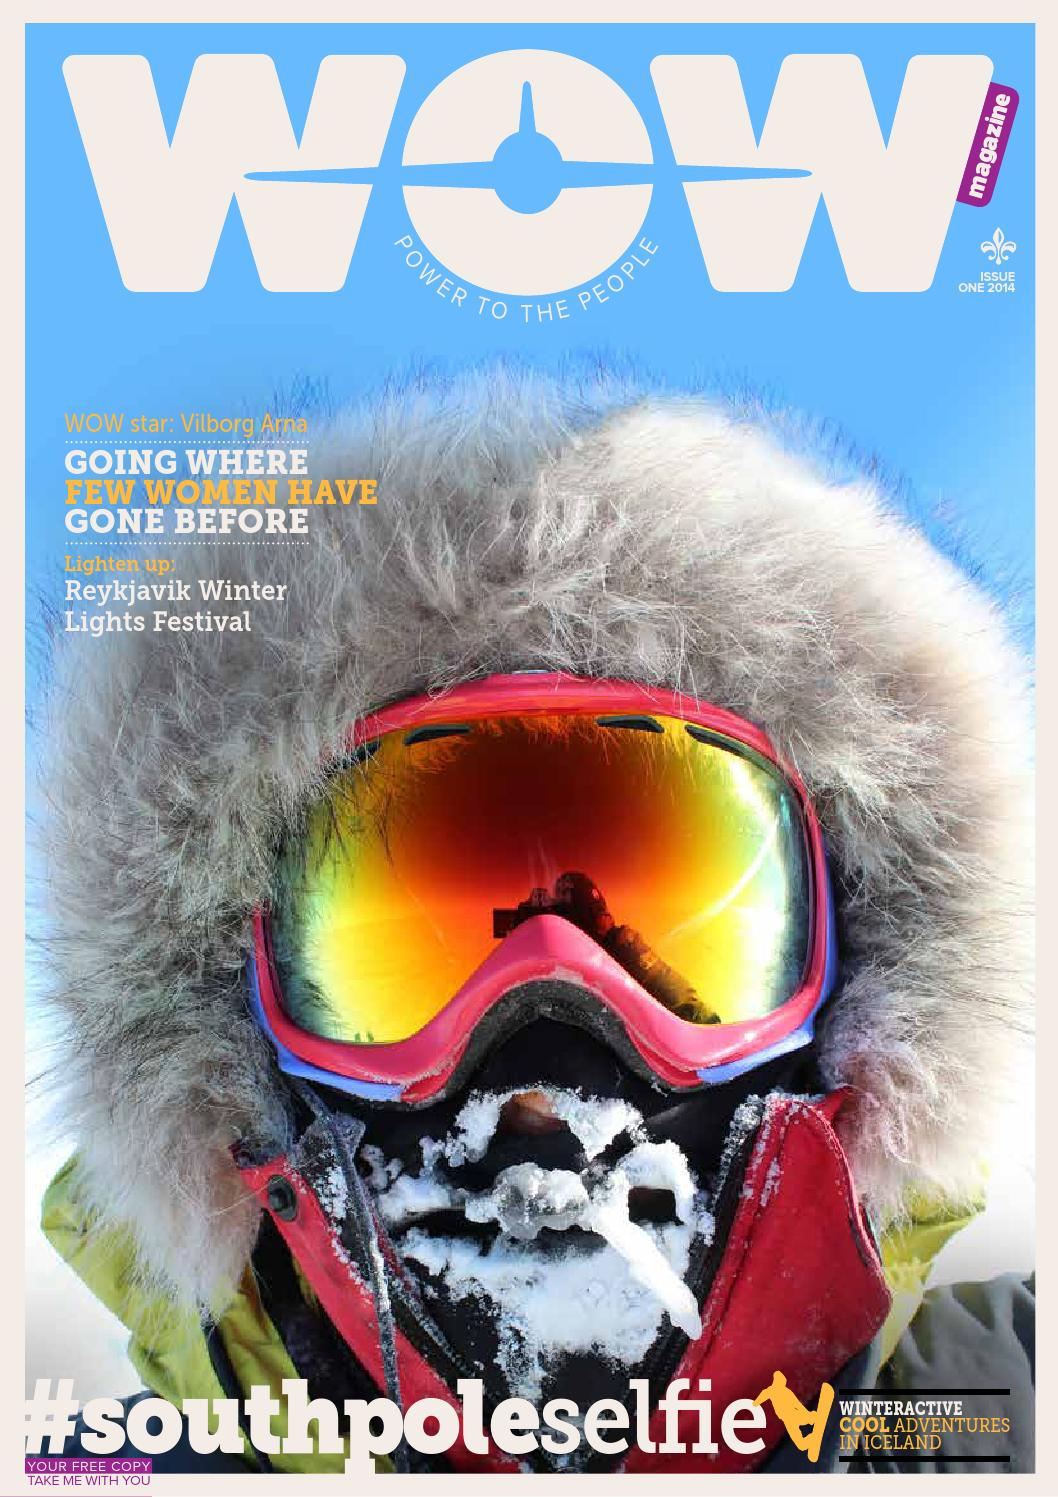 f5581159d48 WOW magazine issue 1 2014 by WOW air - issuu